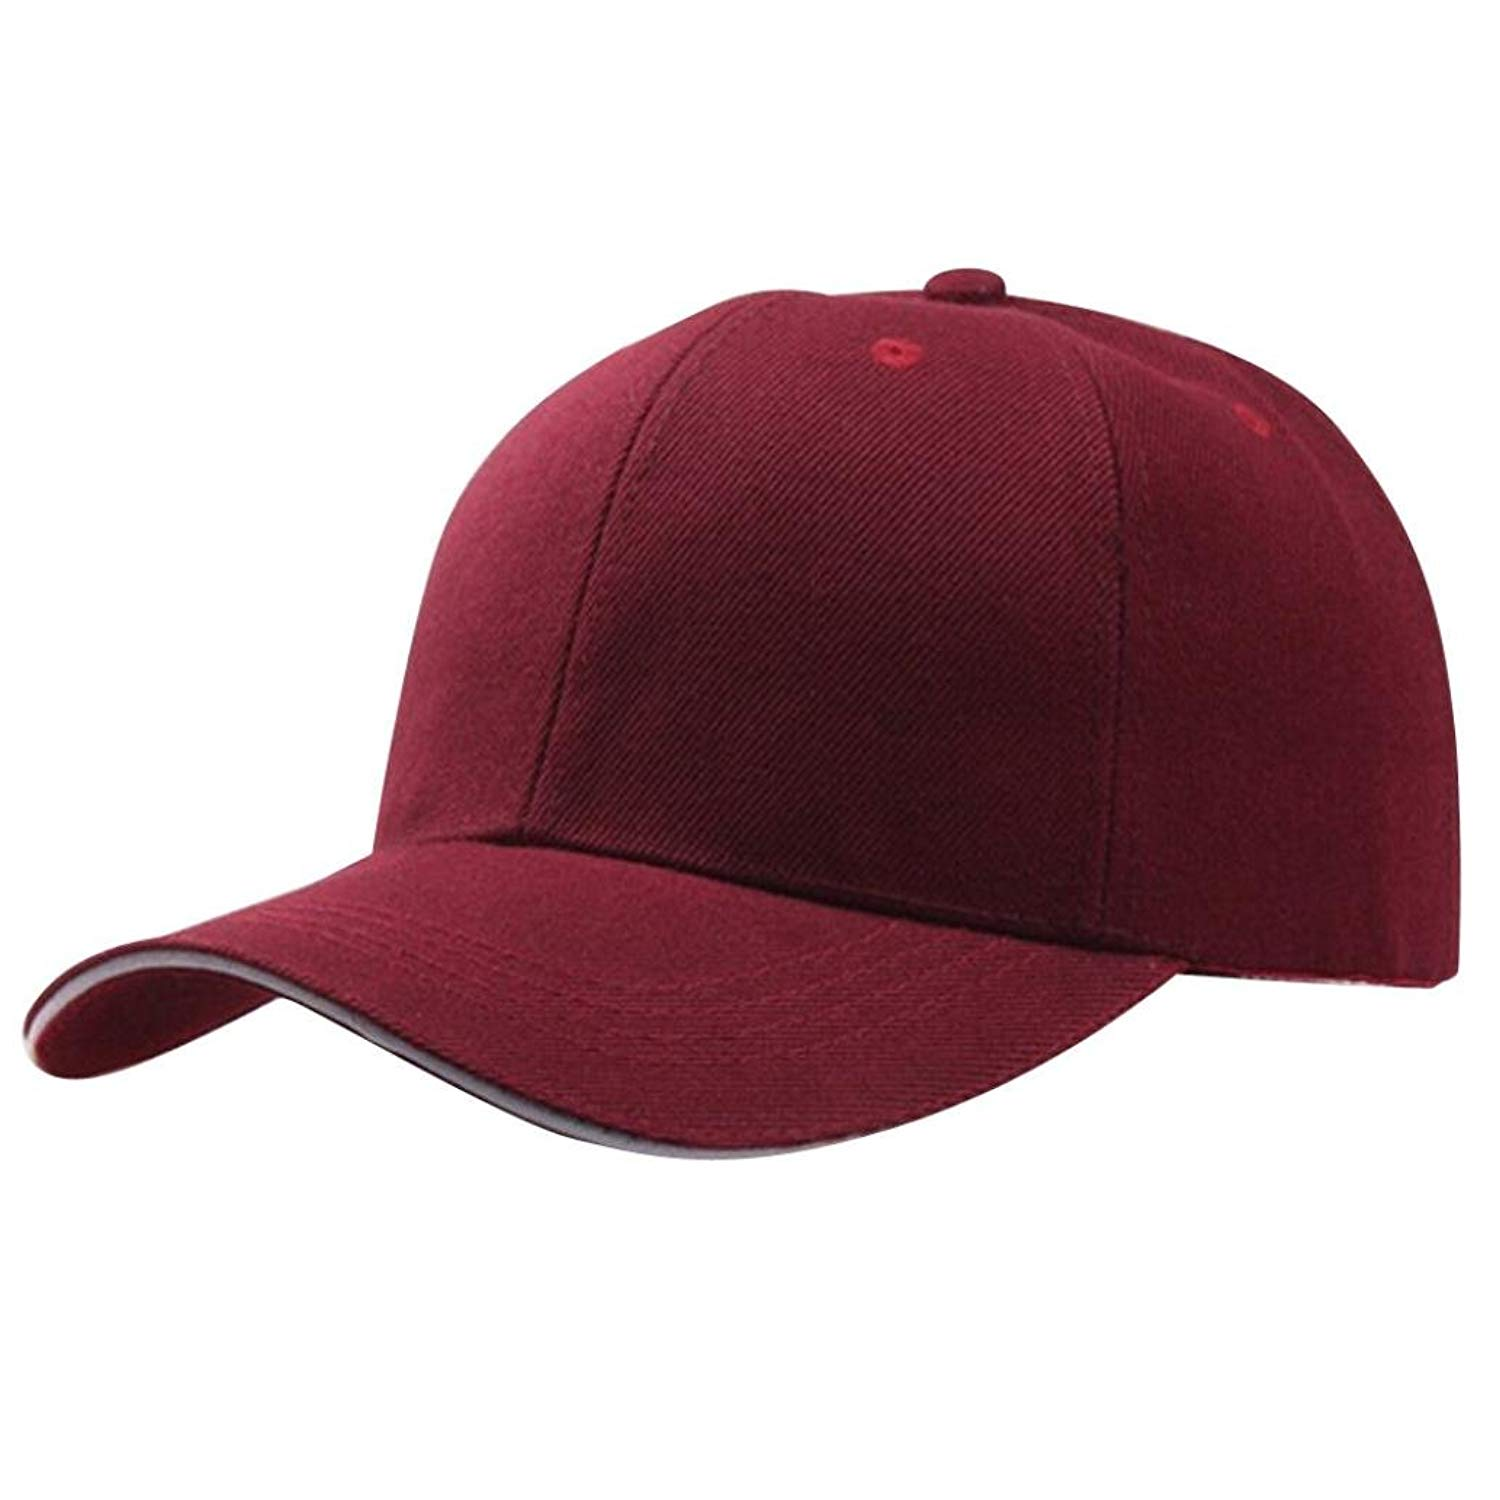 849d4758549 Get Quotations · Funic Clearance Sale Women s Baseball Caps Solid Color  Snapback Hat Hip-Hop Adjustable Hats